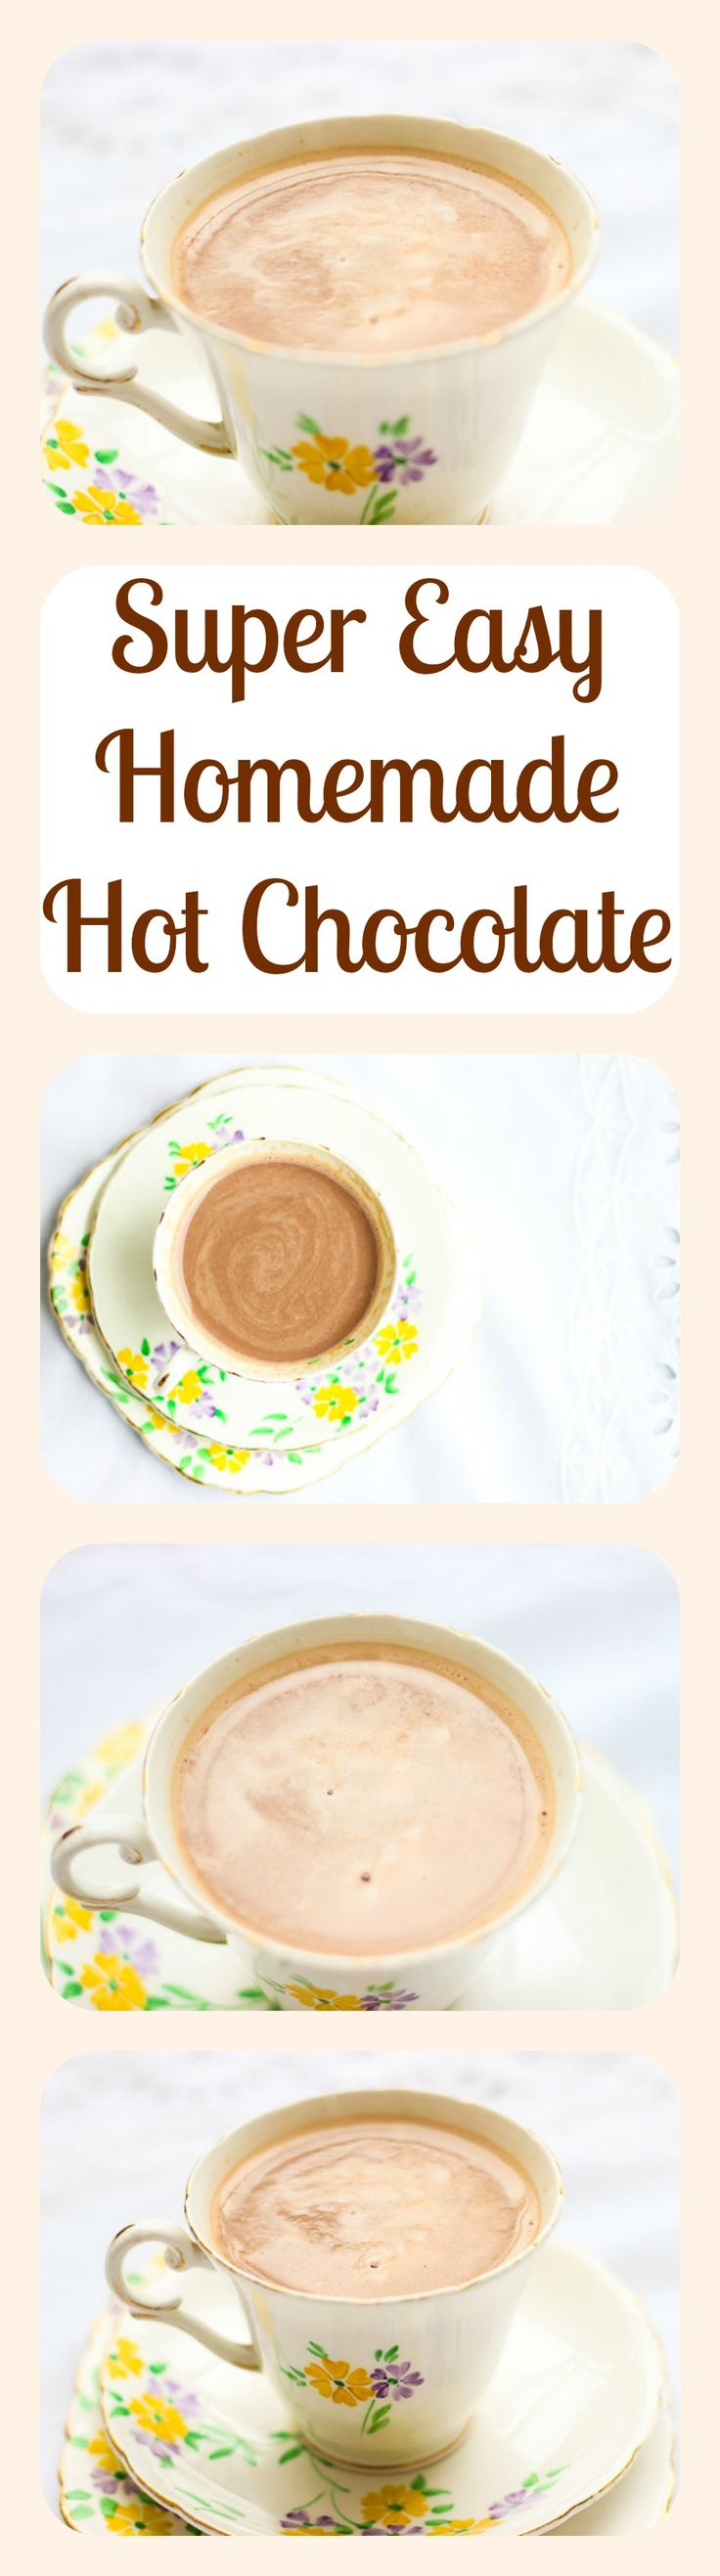 After trying this super easy recipe for homemade hot chocolate, you'll never look at the store-bought stuff the same way again.